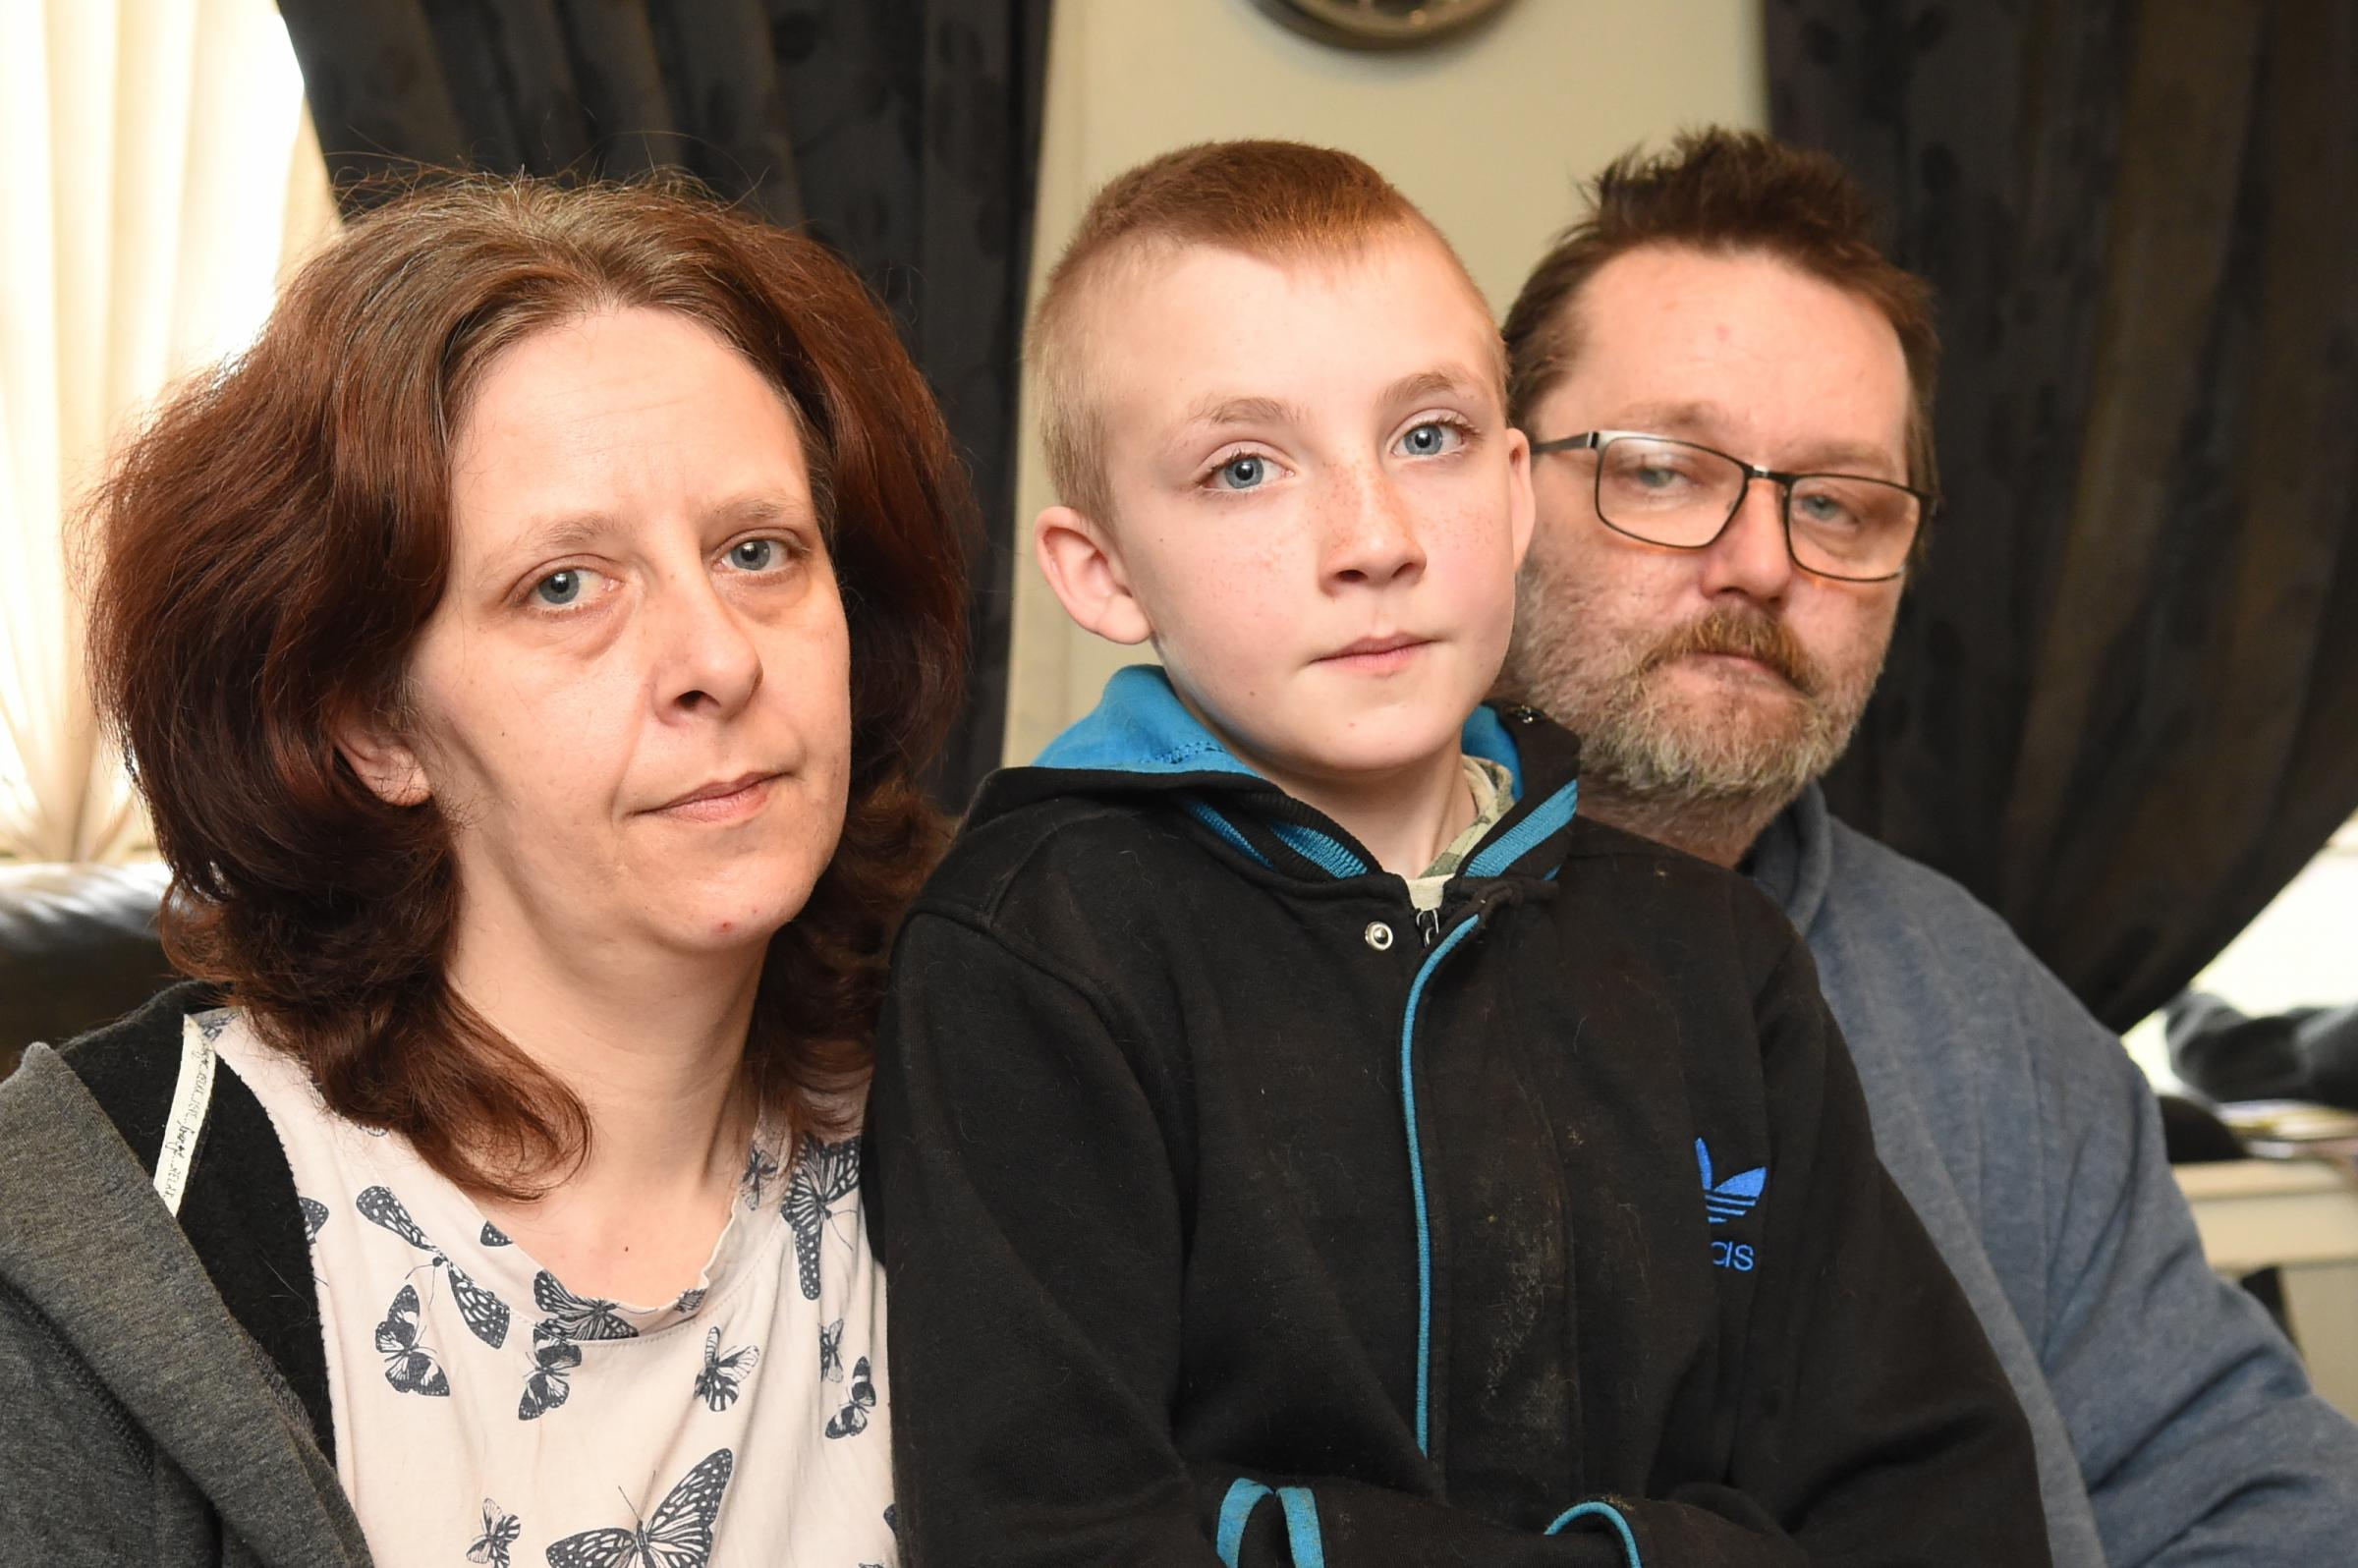 Mum tells of terror after son 'chased and stabbed' with used needle